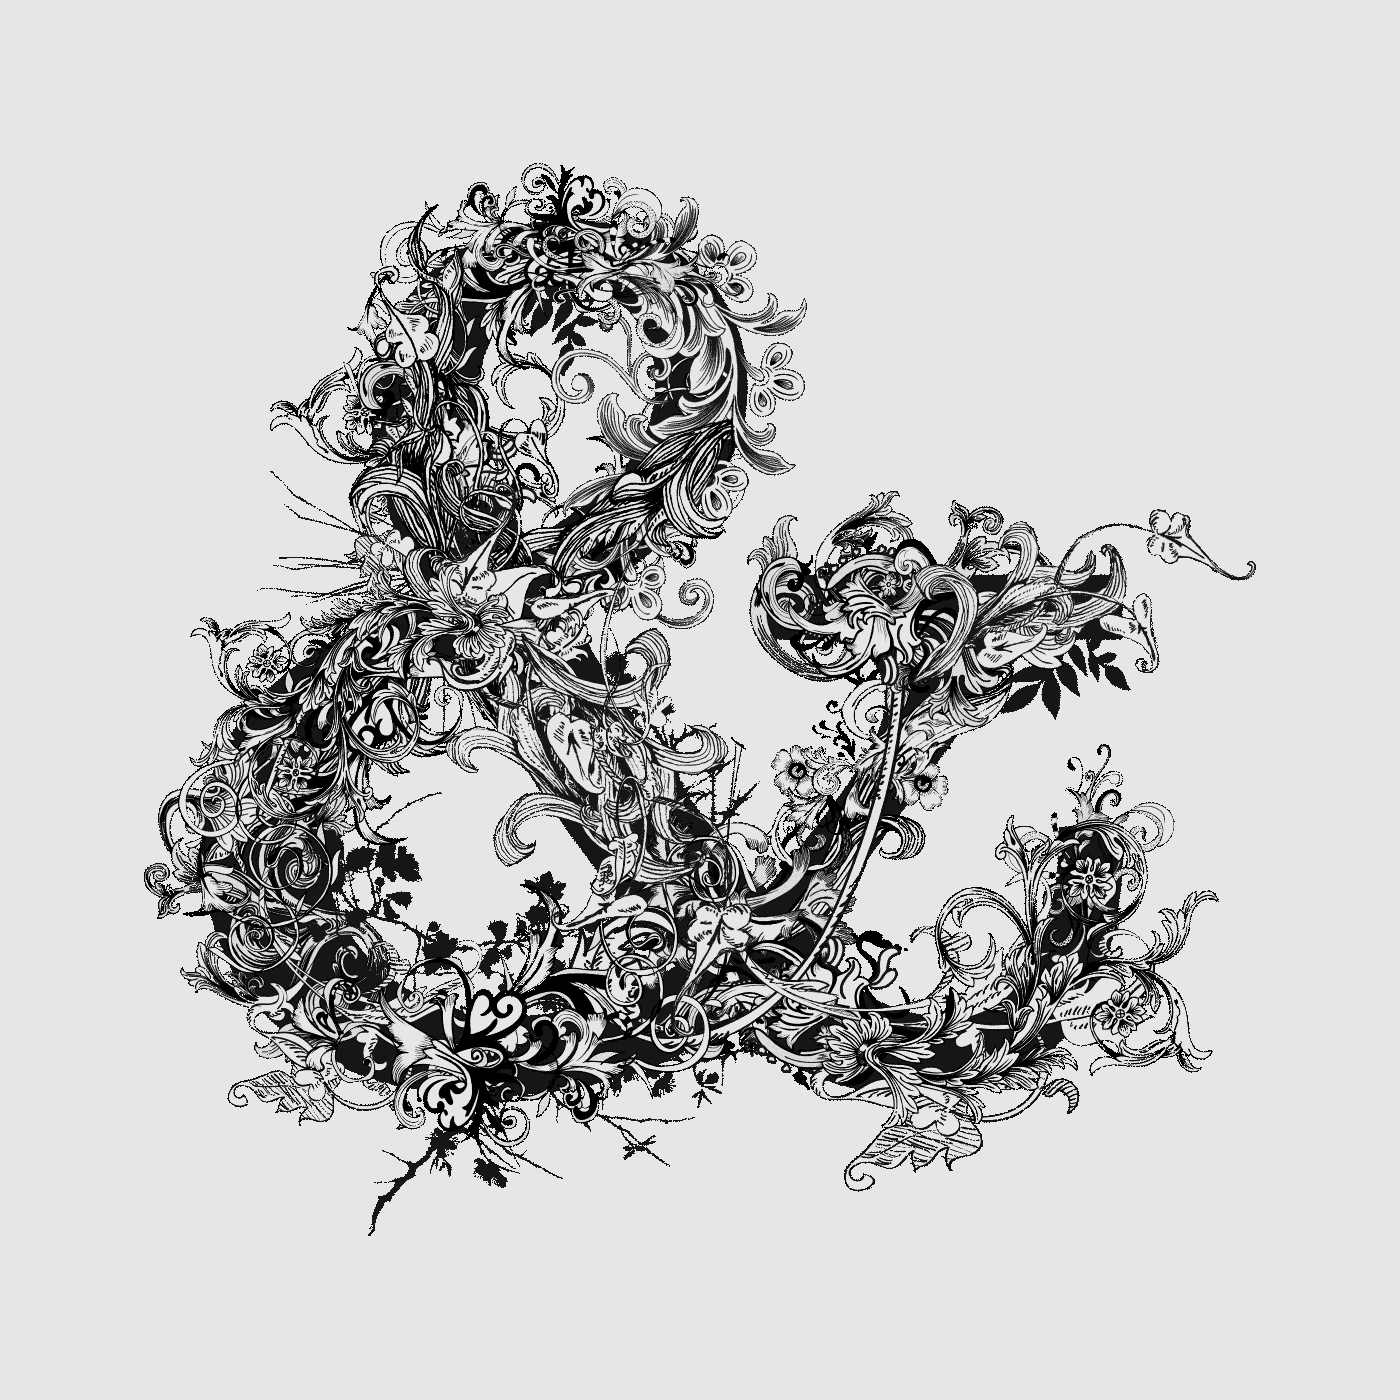 brushwood-closing-ampersand-2,2